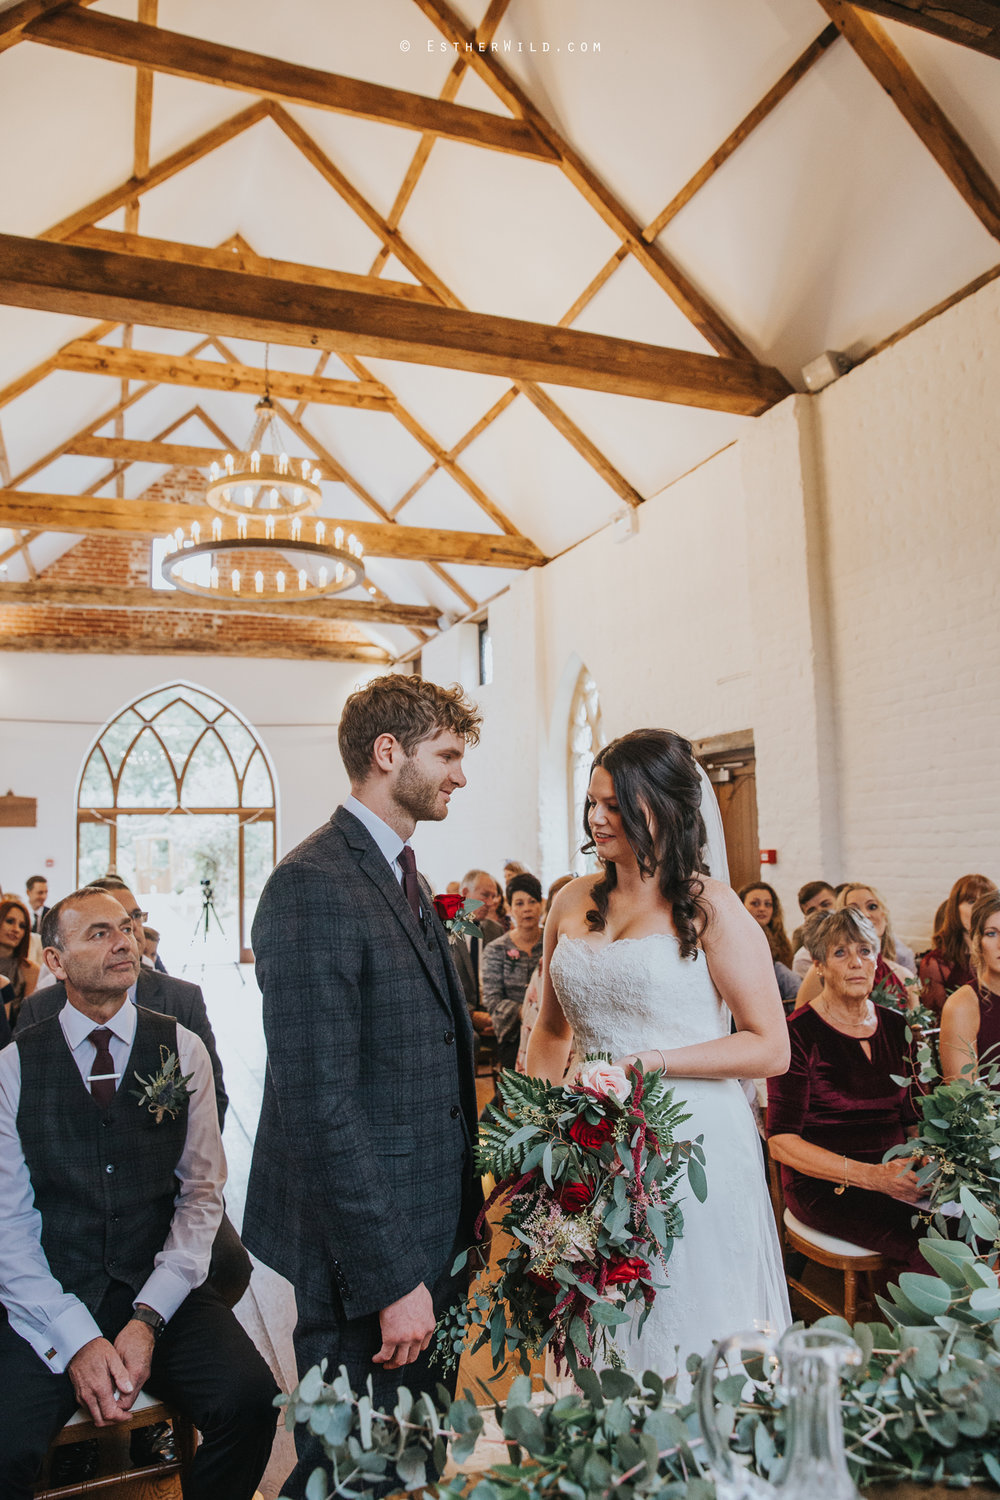 Reading_Room_Weddings_Alby_Norwich_Photographer_Esther_Wild_IMG_0869.jpg